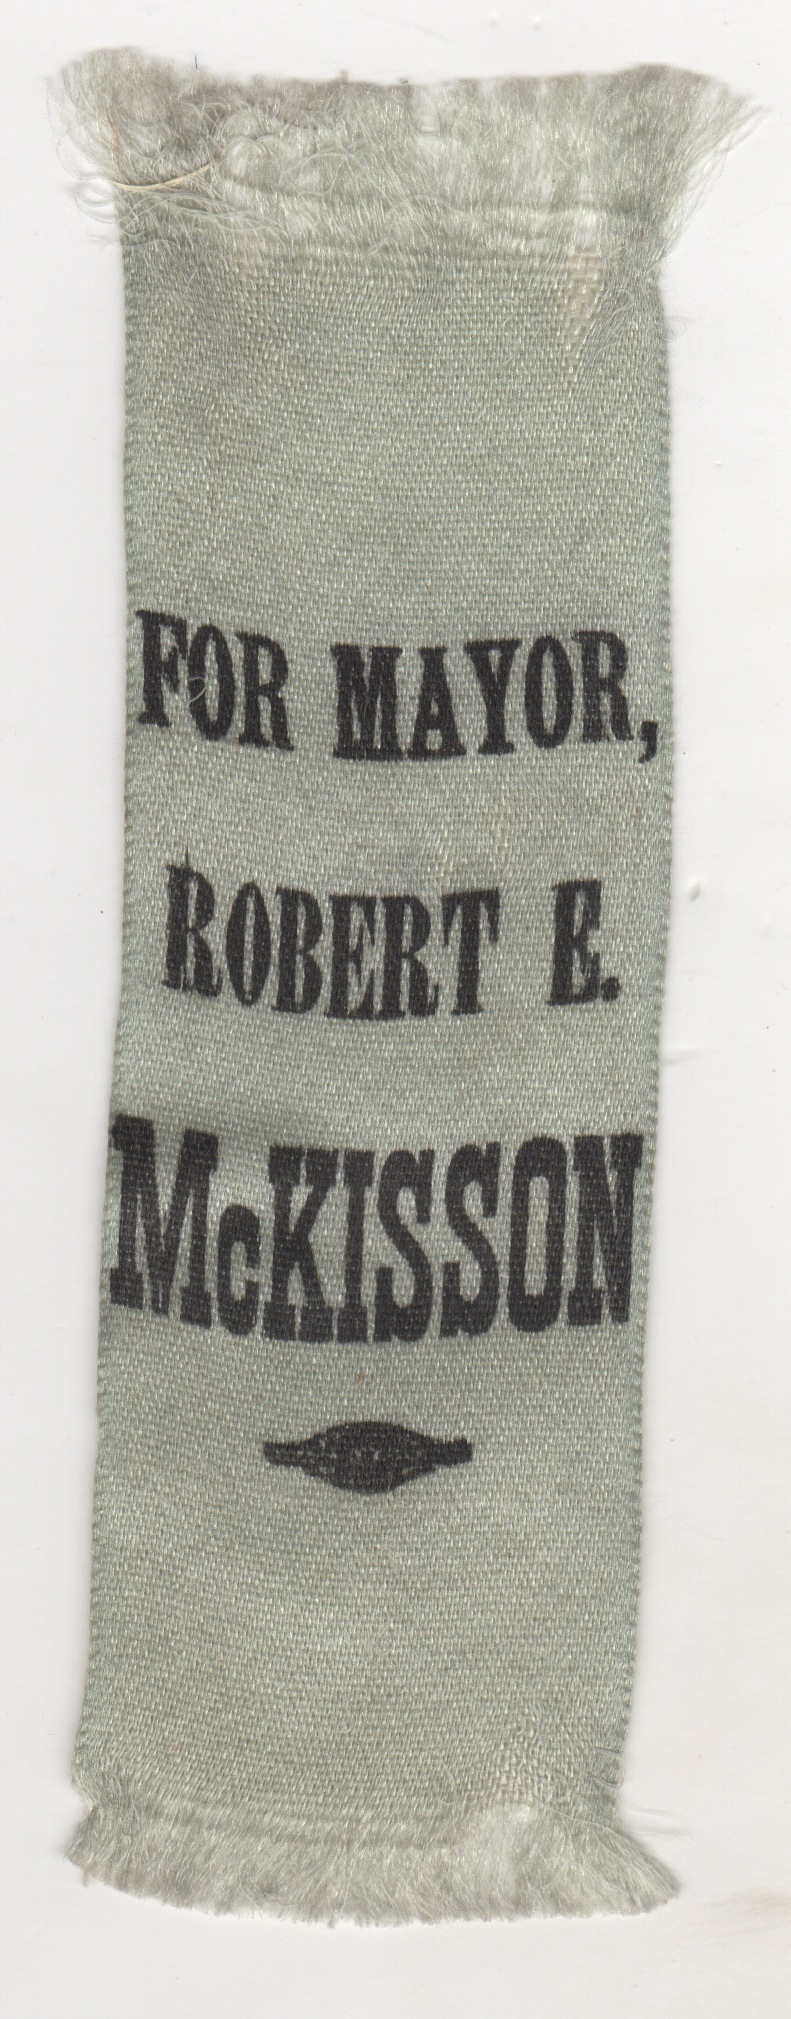 OHMayor-McKISSON01.jpeg